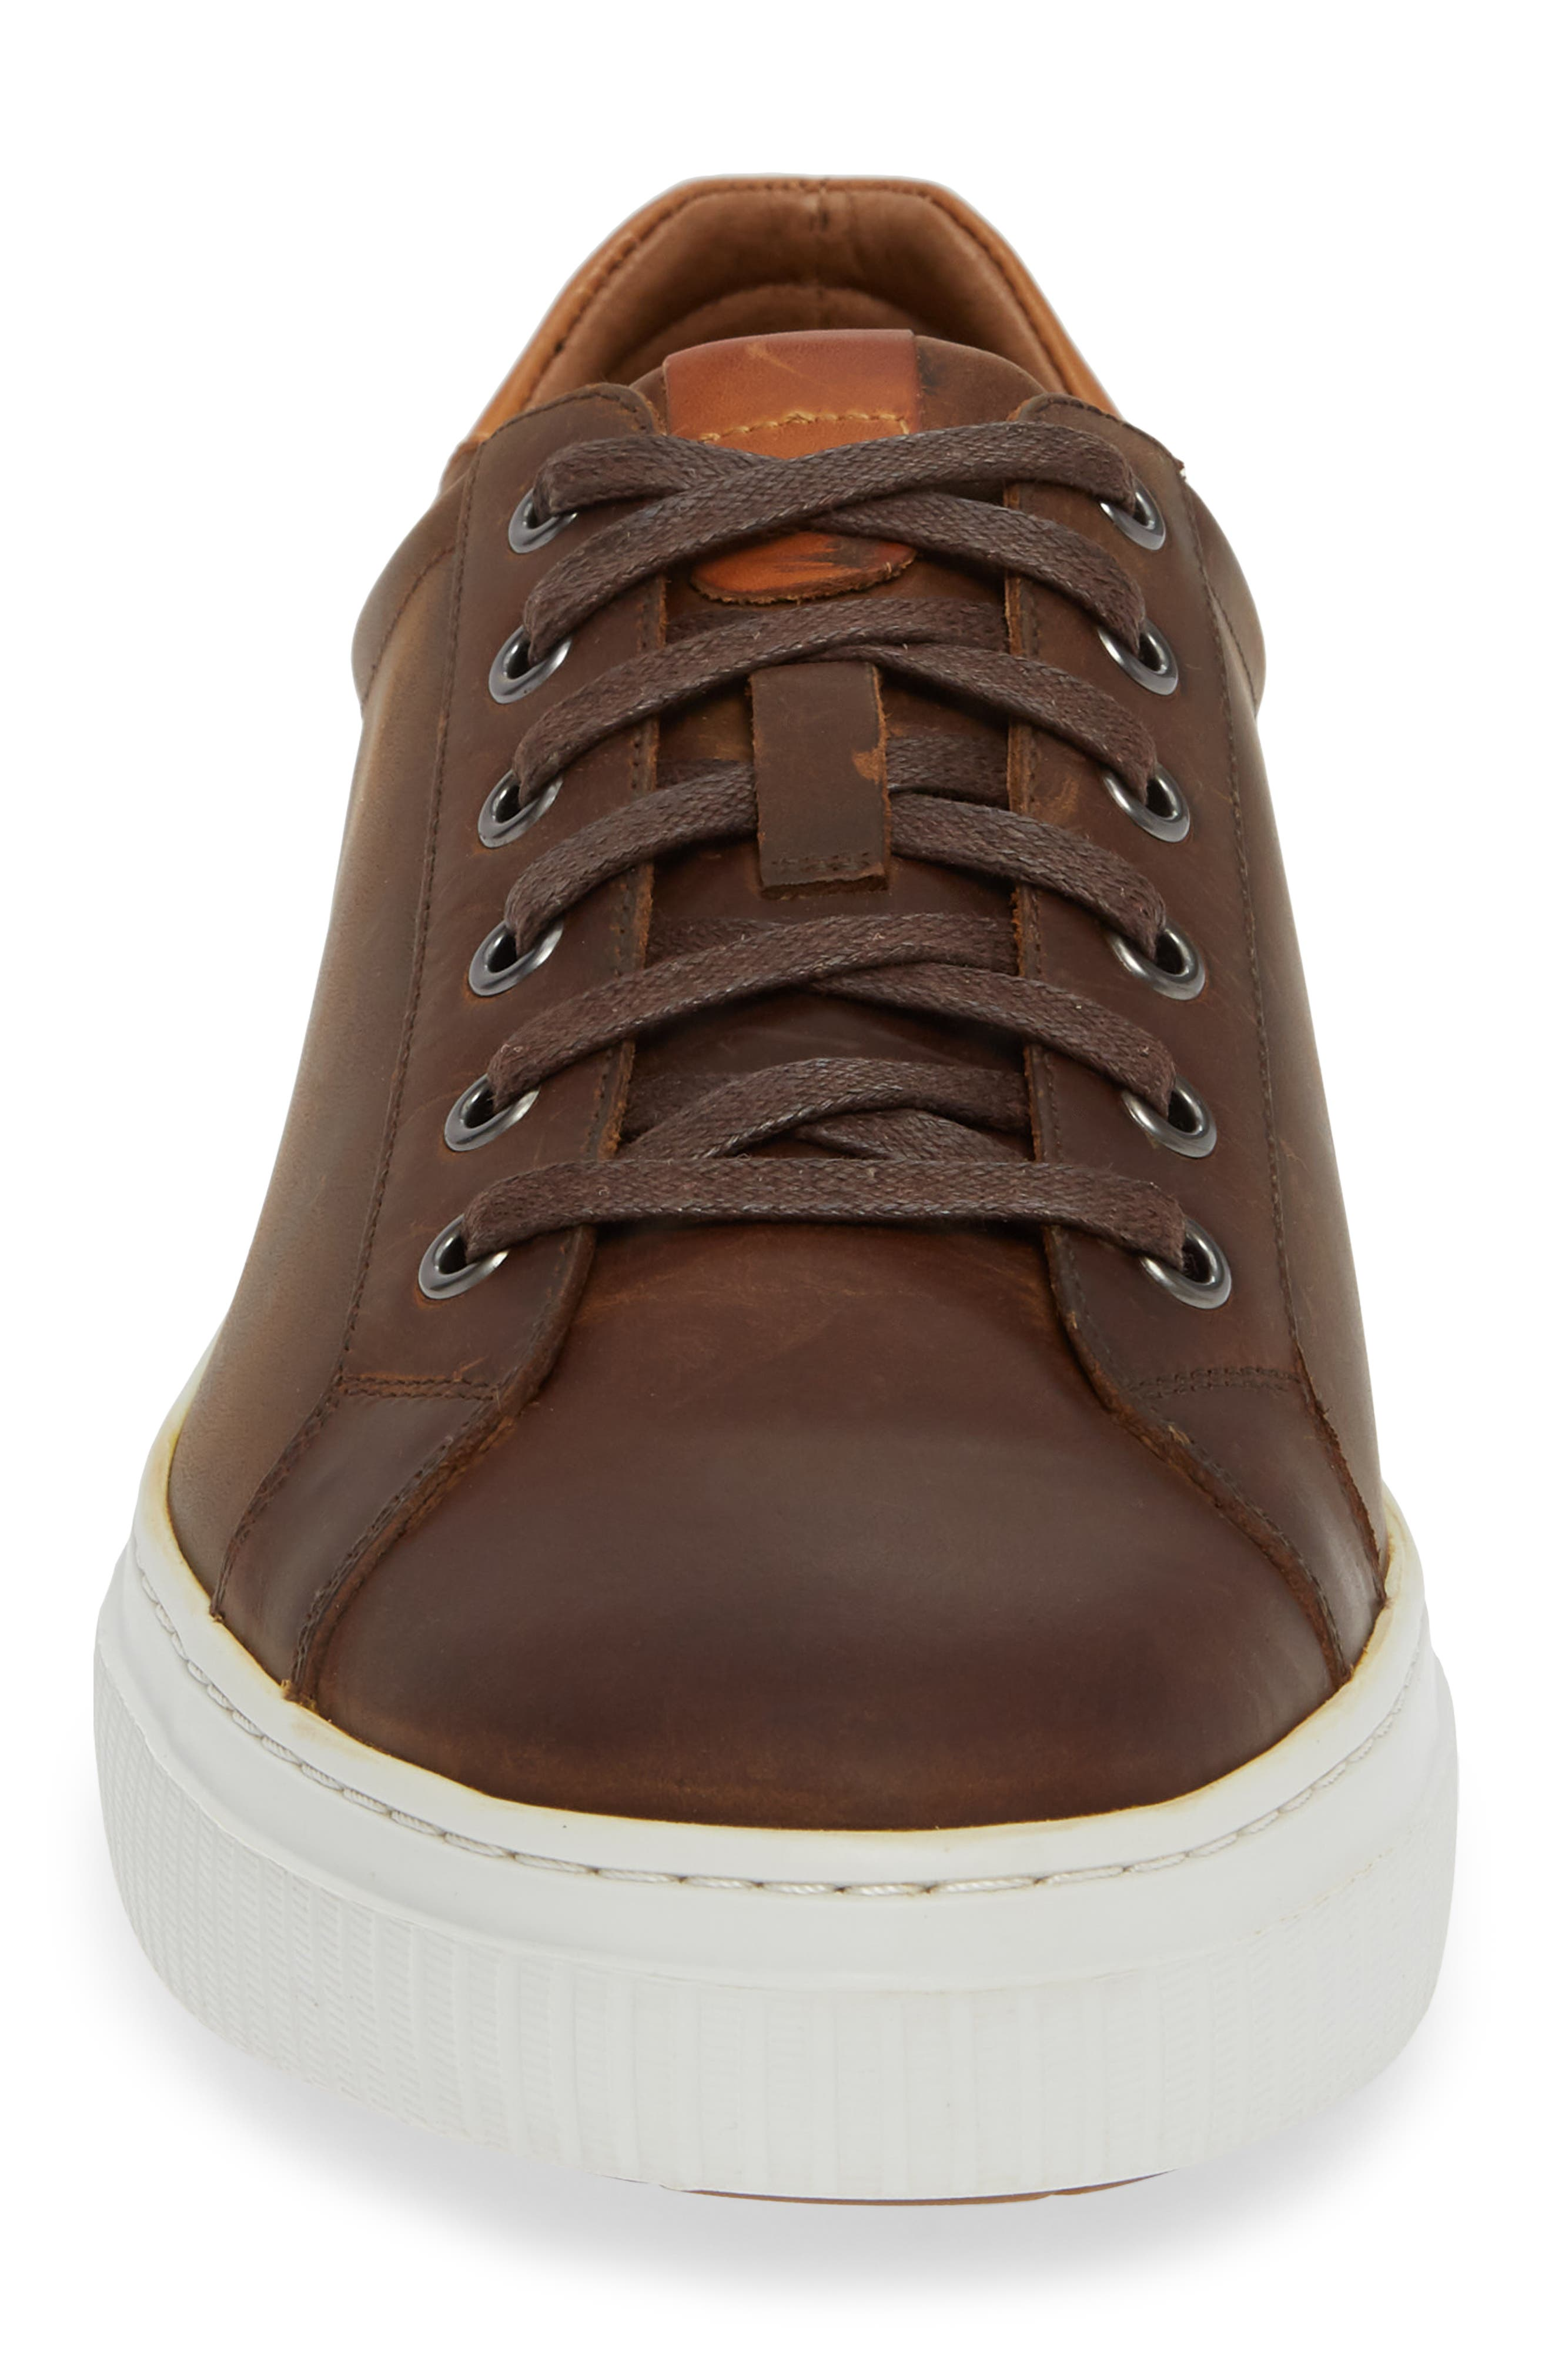 Toliver Low Top Sneaker,                             Alternate thumbnail 4, color,                             TAN LEATHER